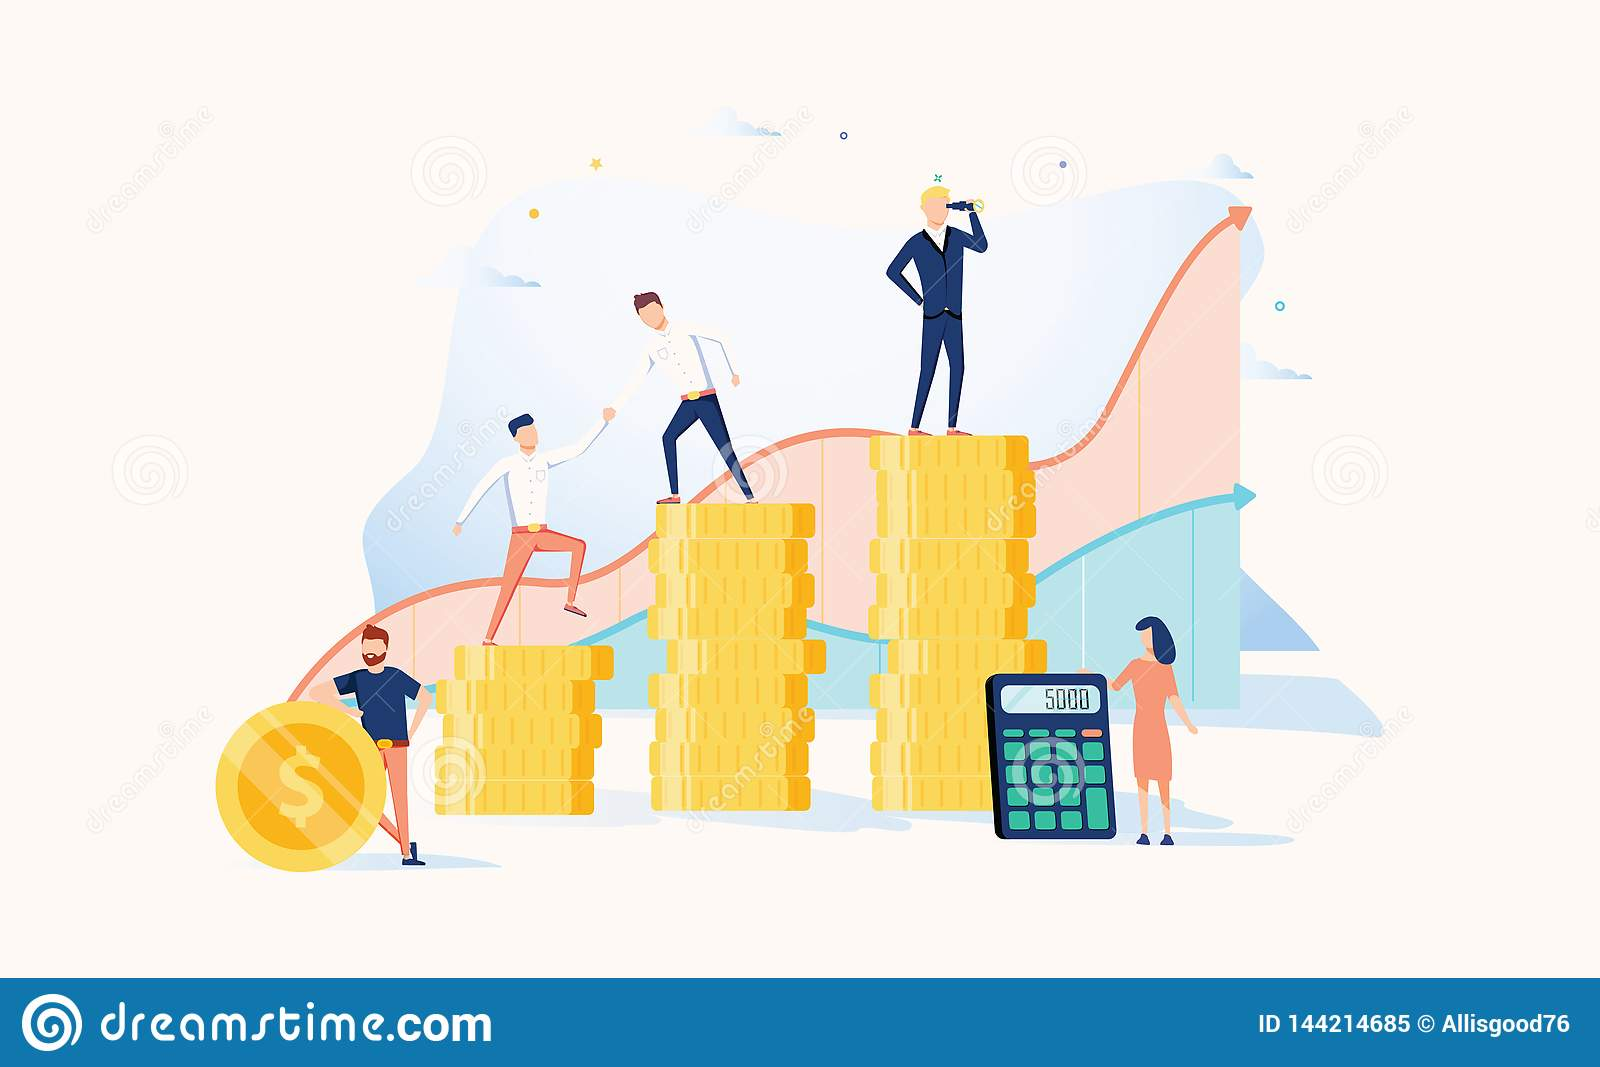 Career growth to success. Business people. Vector illustration. Achievement concept. Financial wealth and work promotion